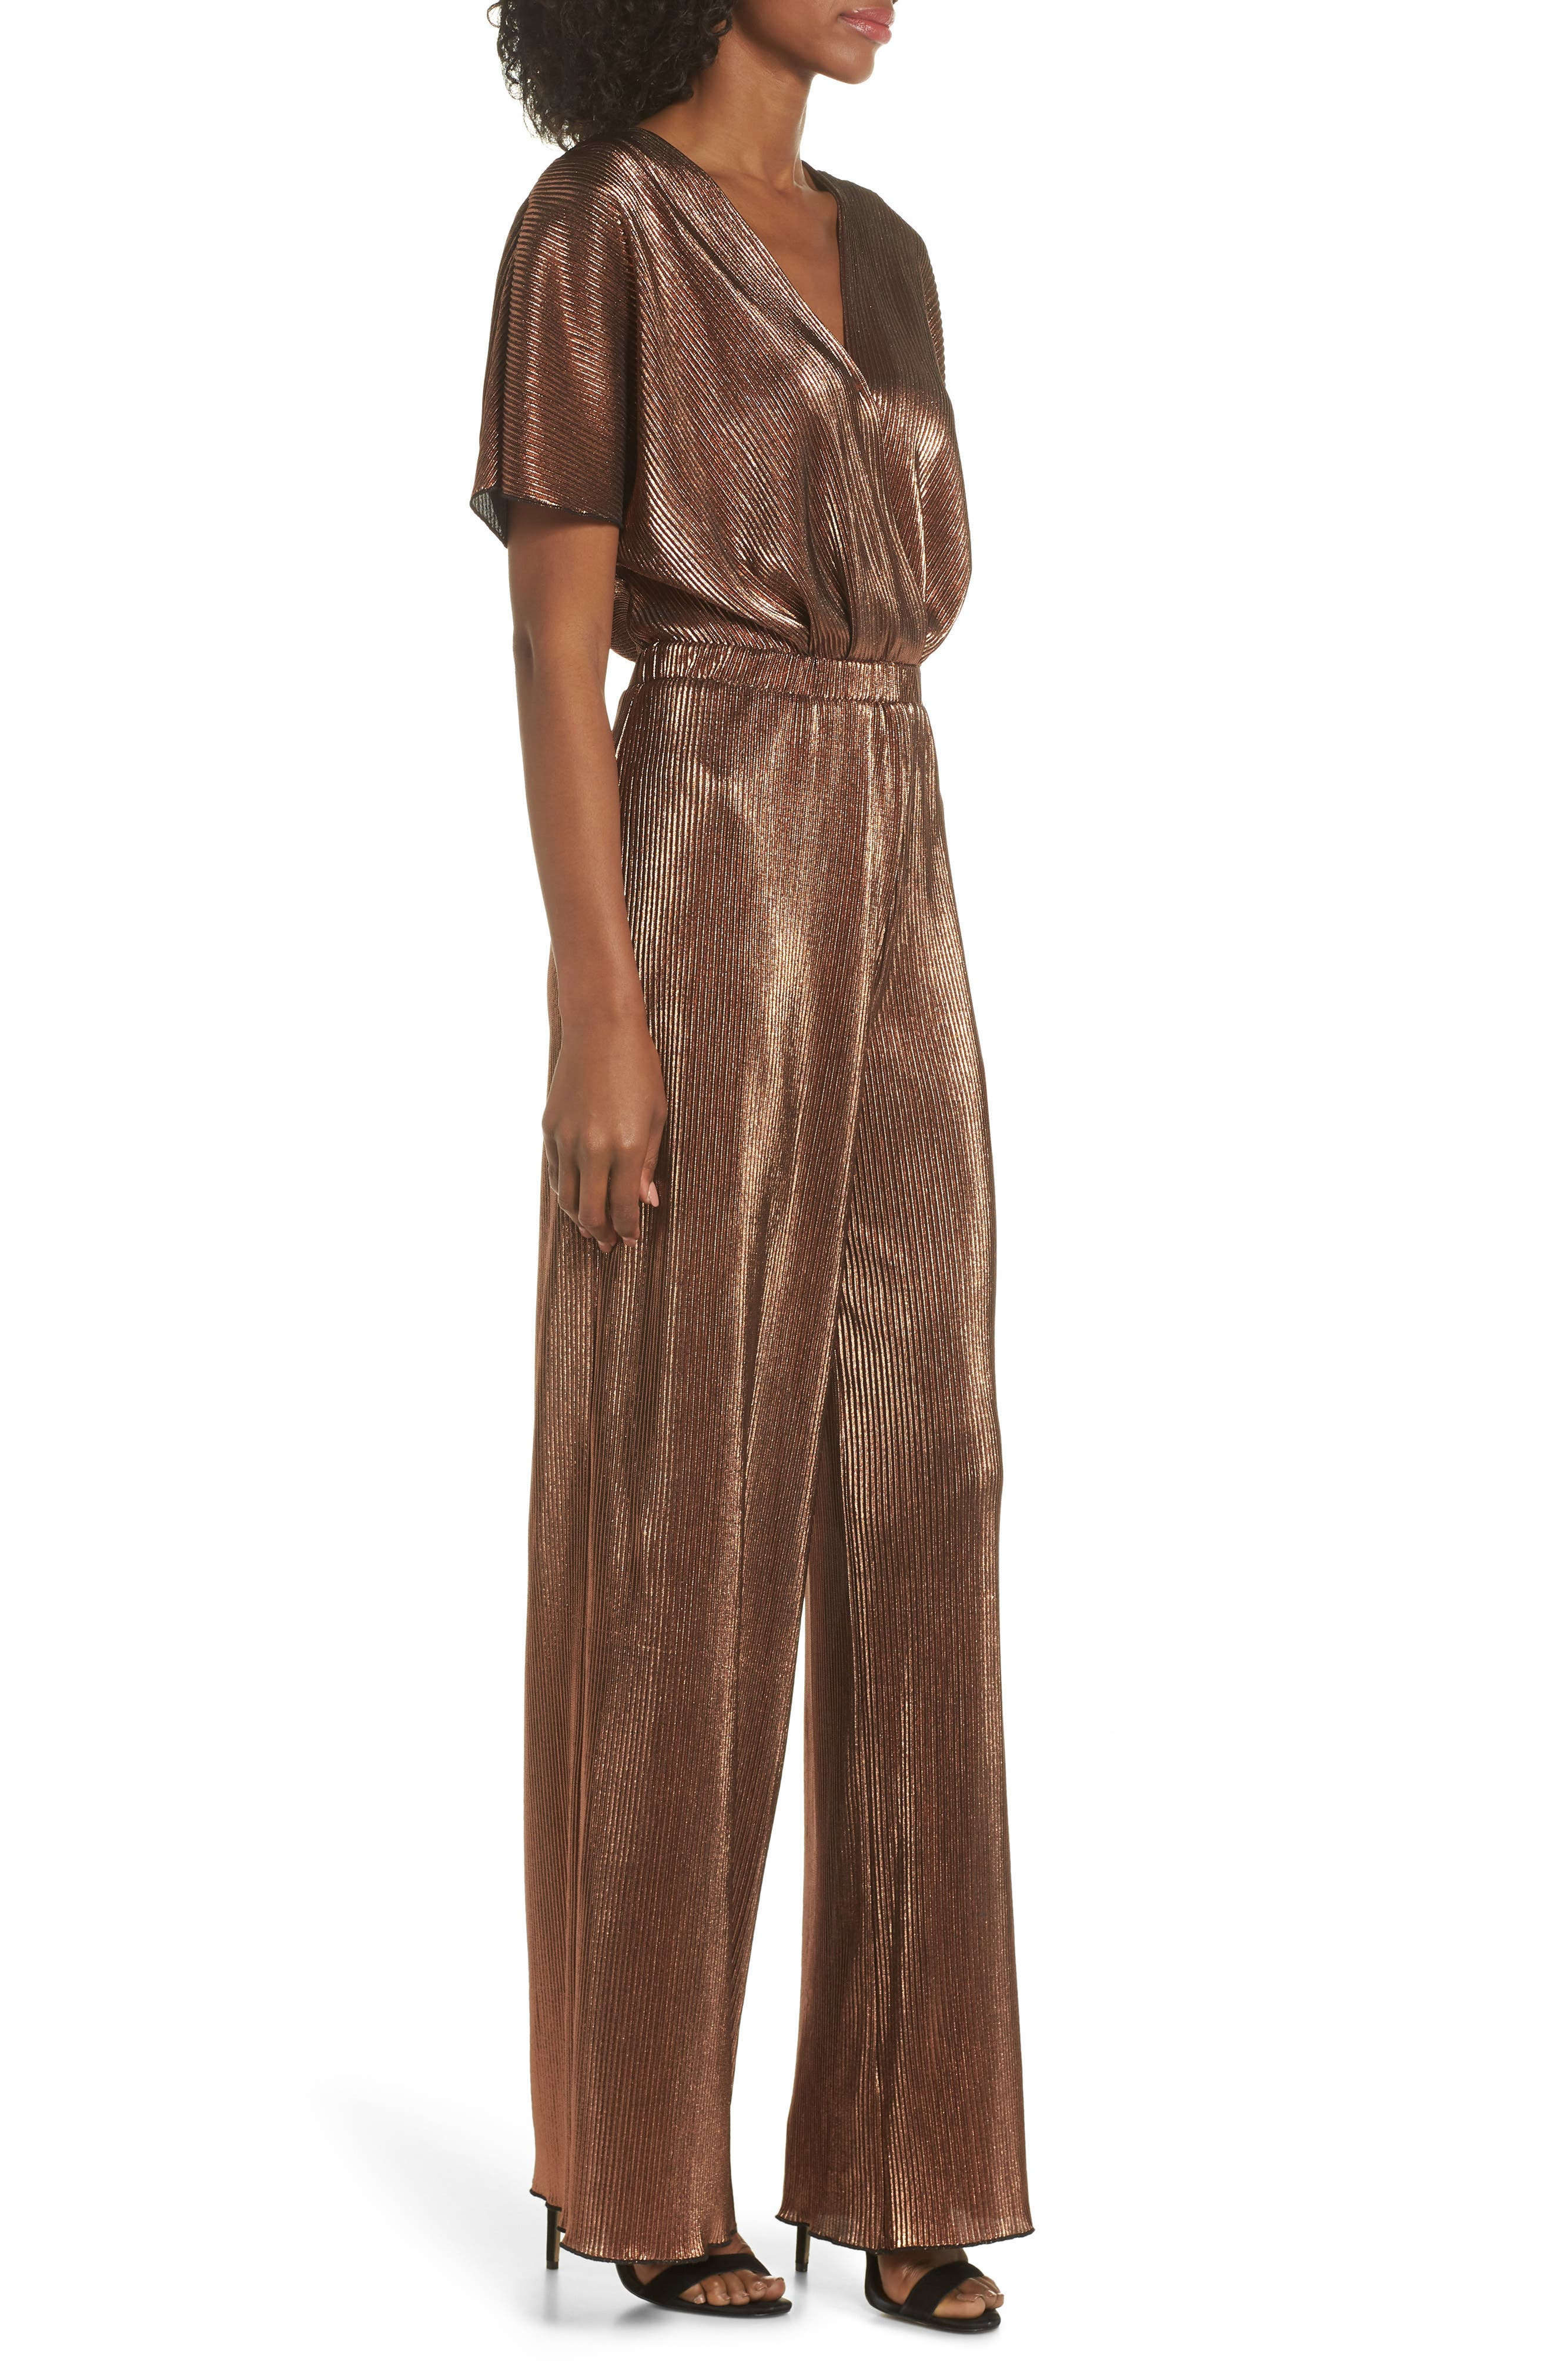 CHARLES HENRY, Crossover Jumpsuit, Alternate thumbnail 4, color, 220